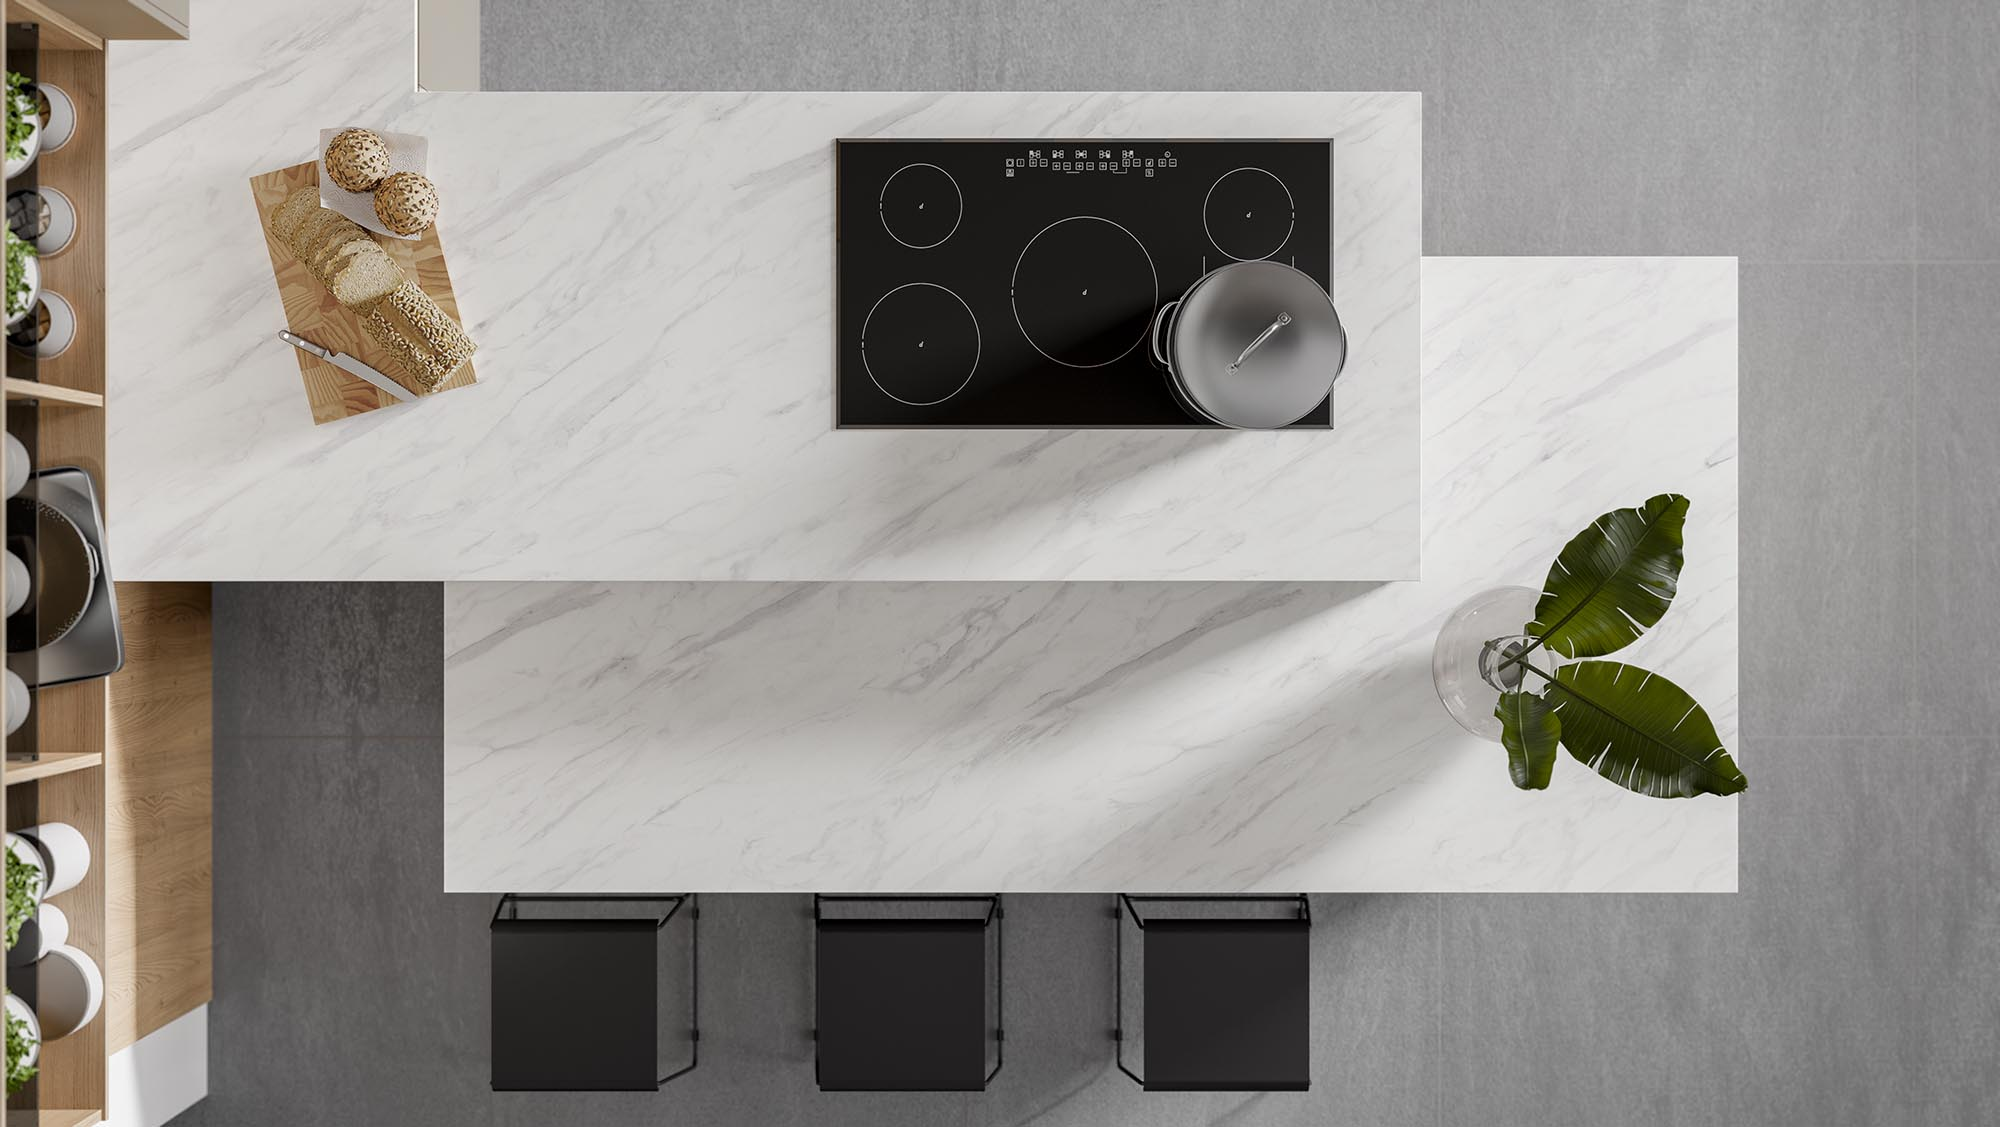 Multi Textured Kitchen Imagery 2